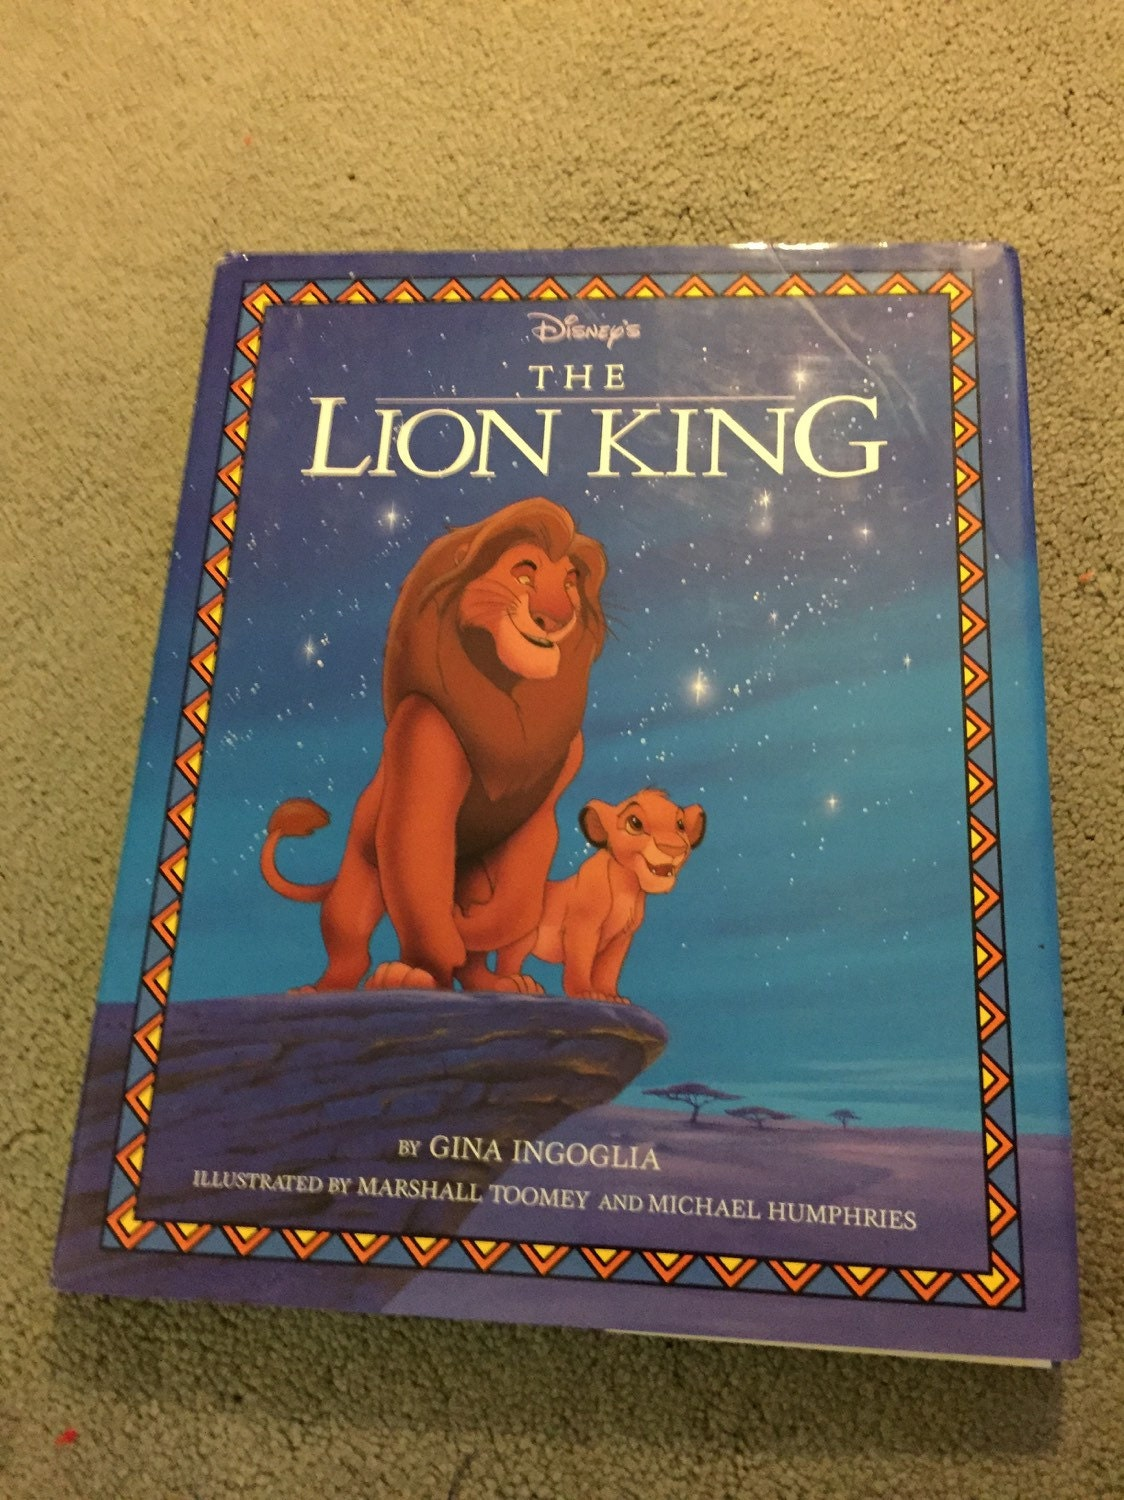 research paper on the lion the witch and the wardrobe Midterm research paper thesis statement: the characters and events of the chronicles of narnia: the lion, the witch and the wardrobe have symbolic similarities to events described in the bible.